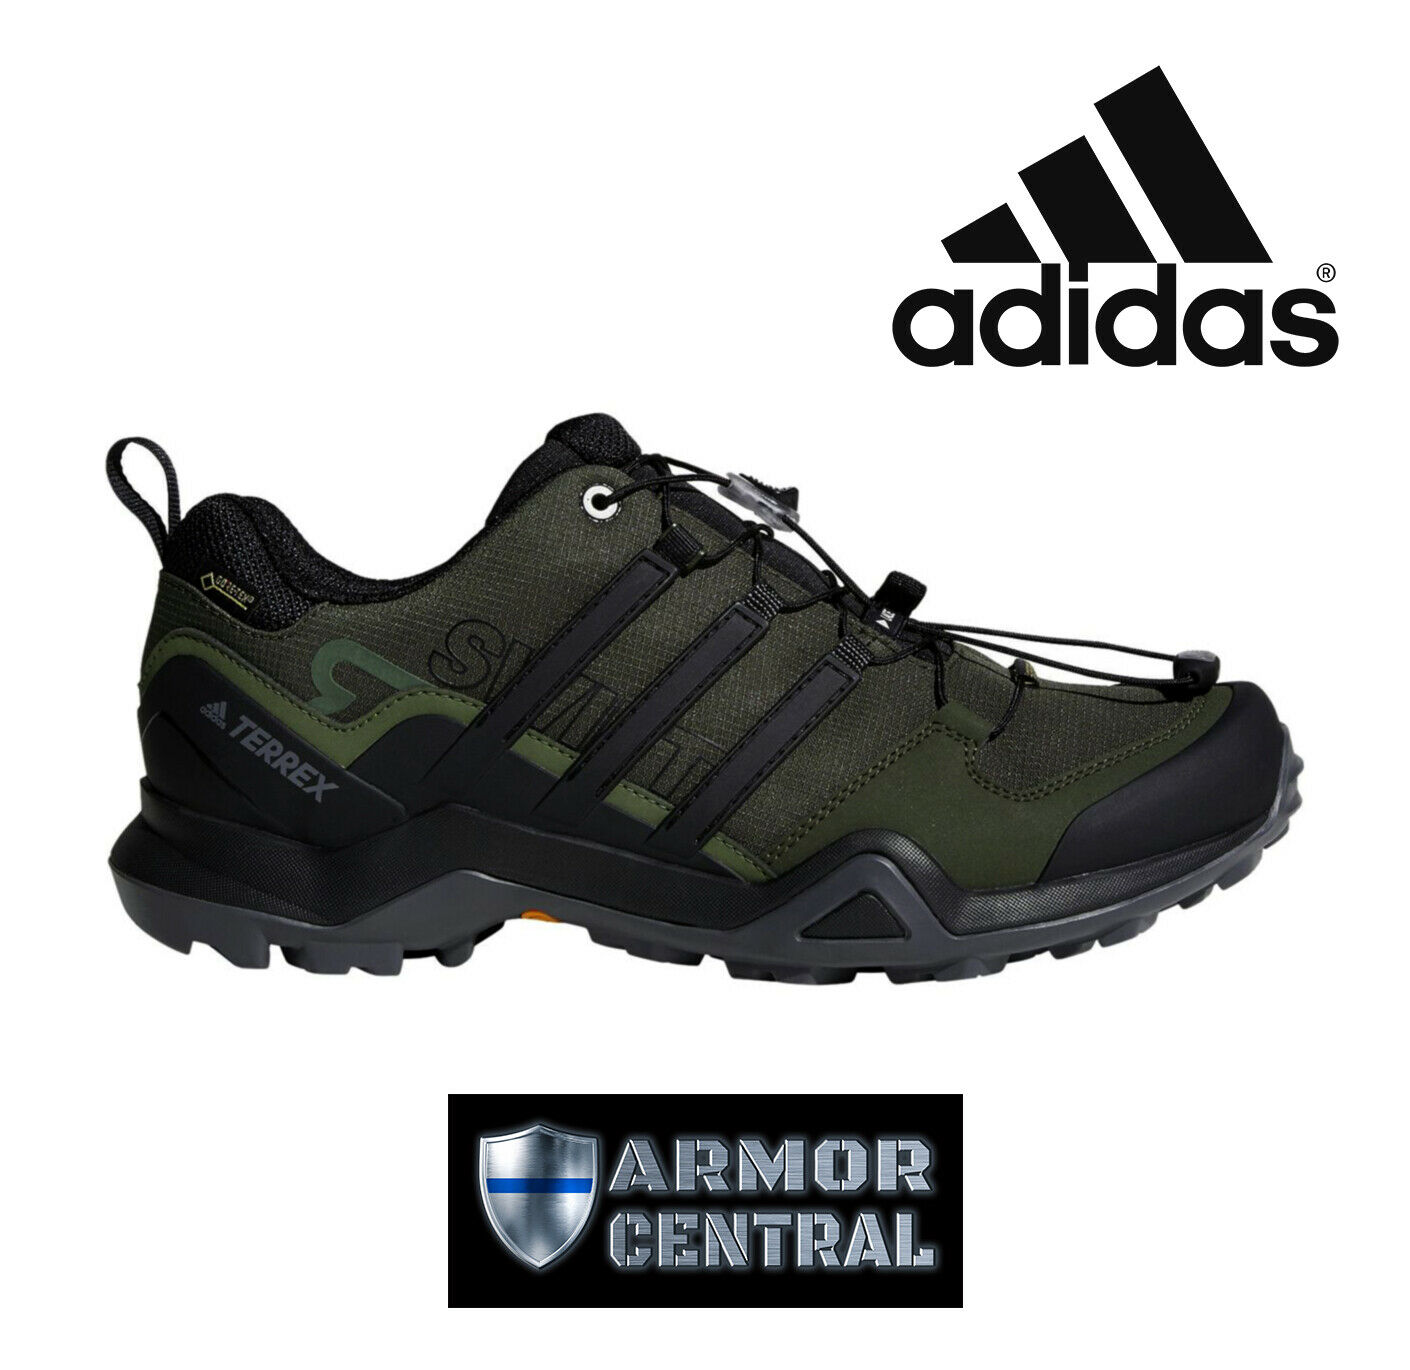 ADIDAS Women's Terrex Swift R2 Gtx W Hiking Shoes